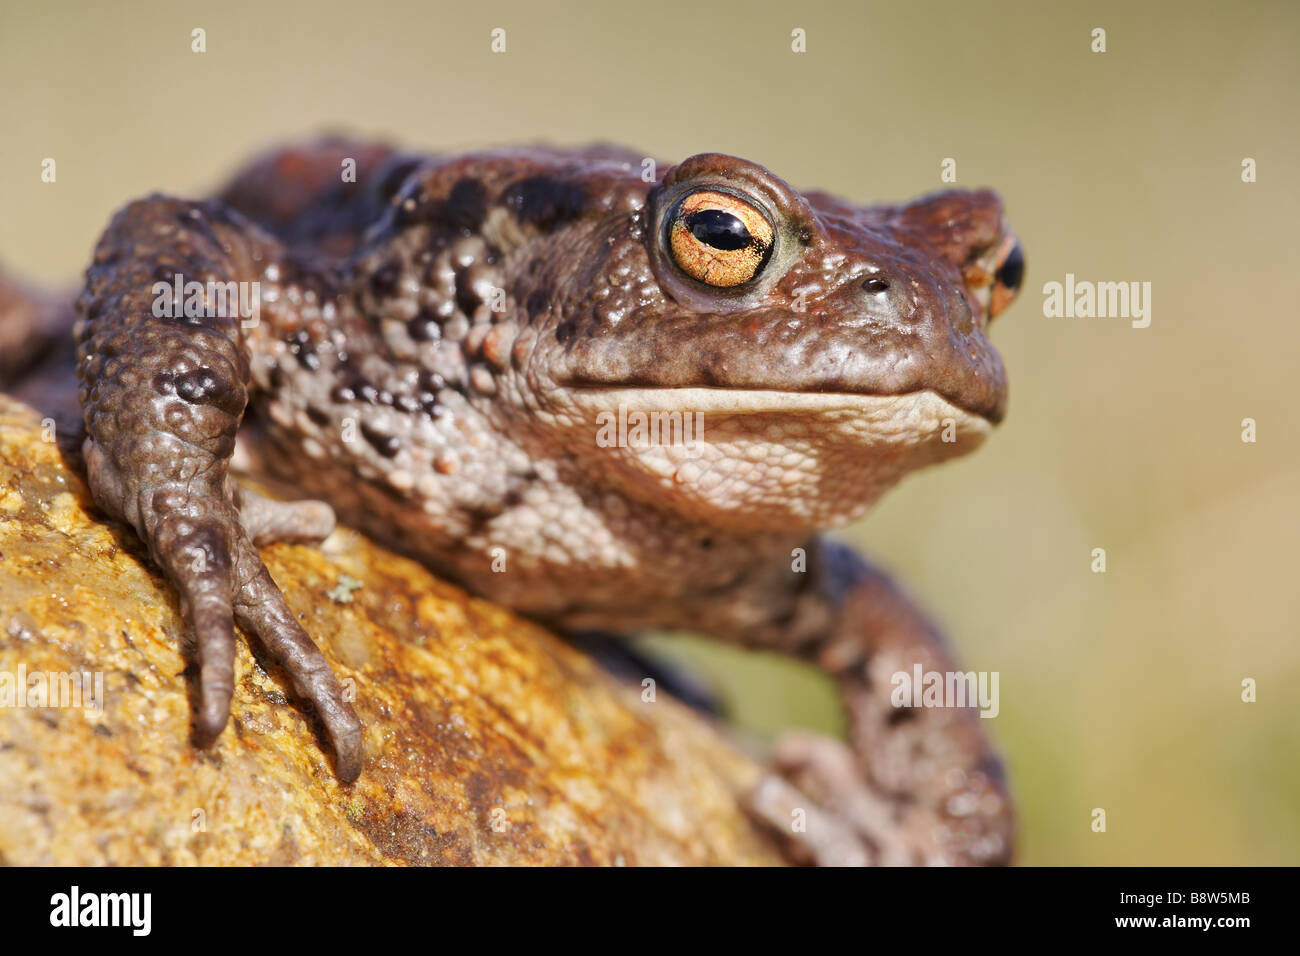 European Common Toad (Bufo bufo), close-up of adult resting on rock - Stock Image